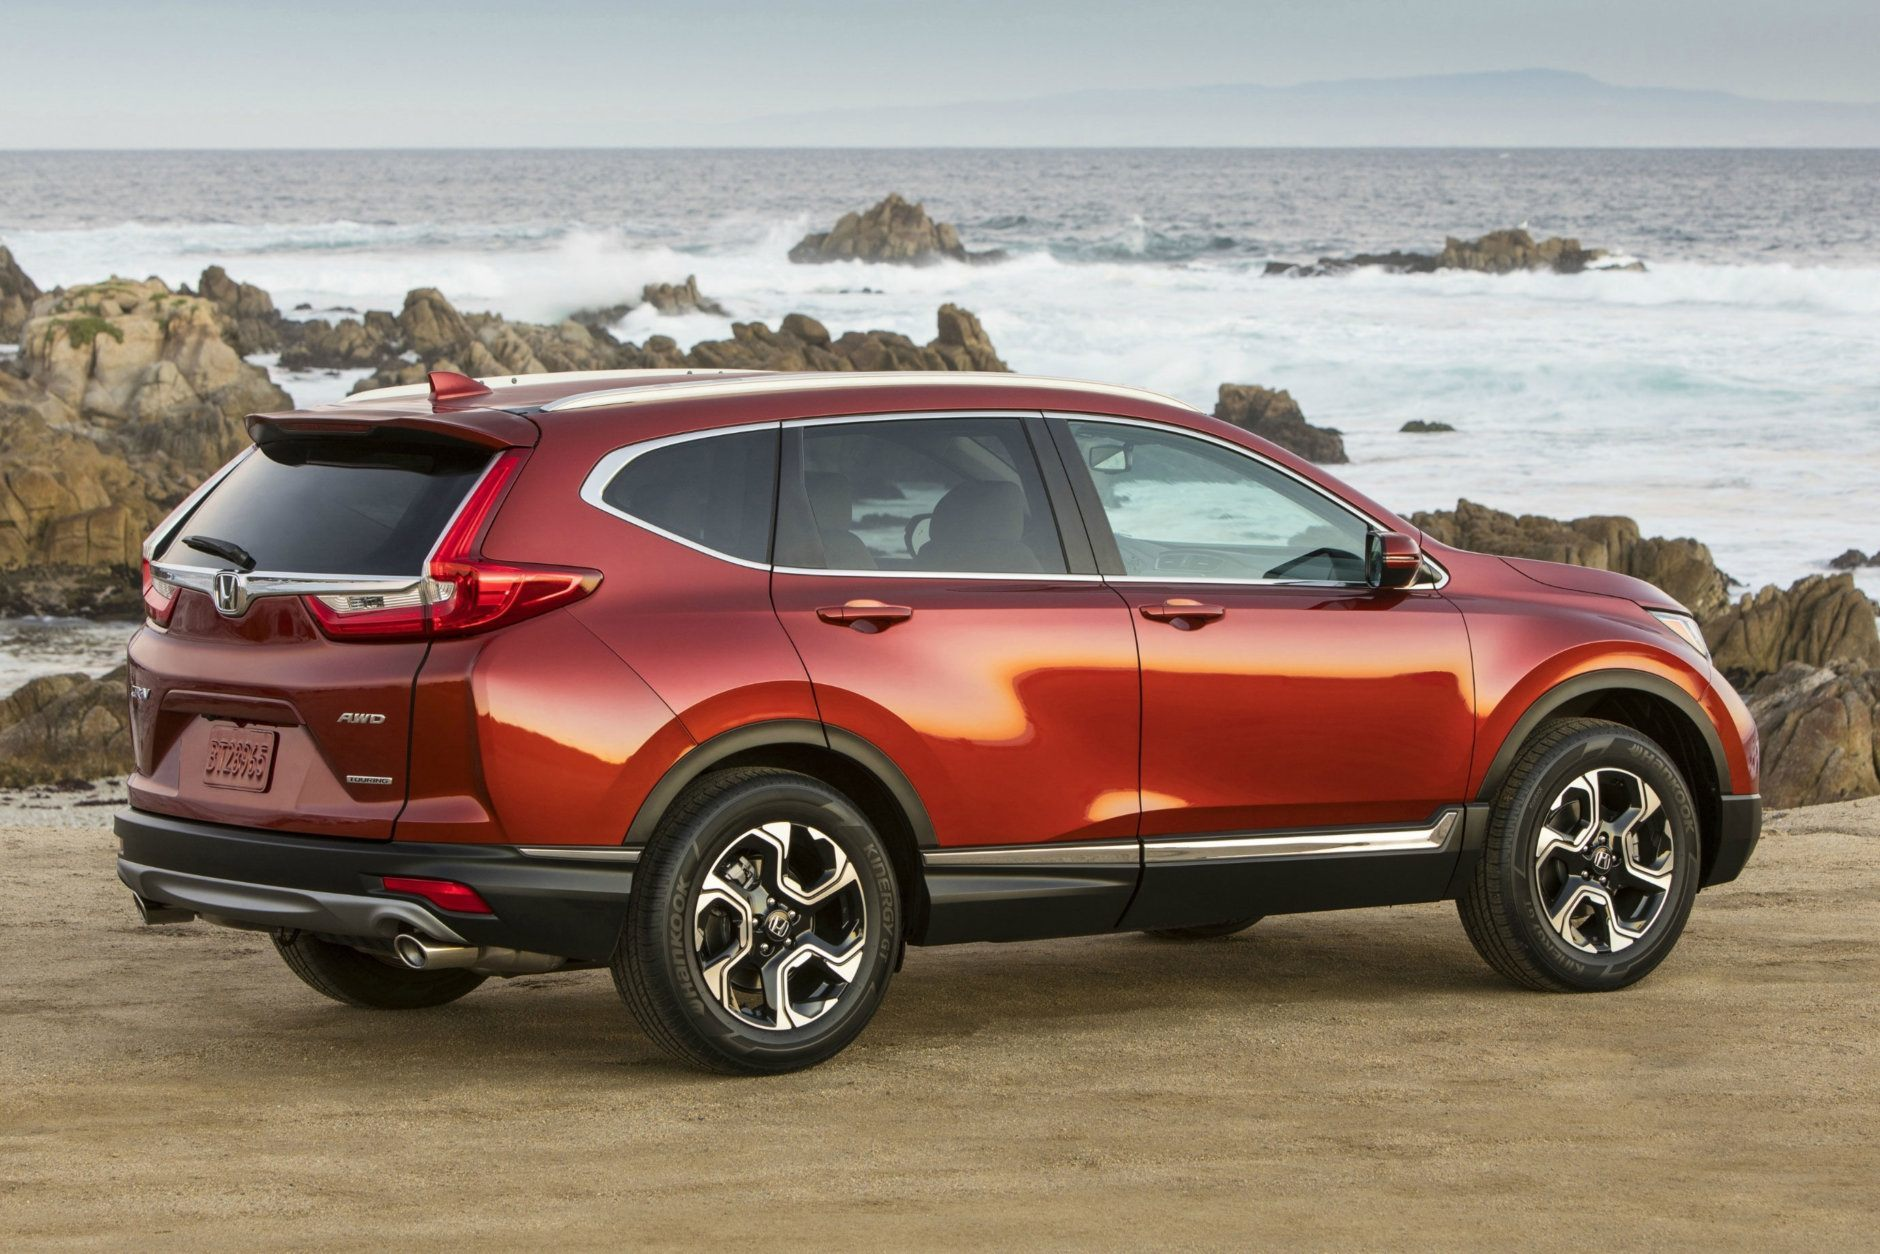 2019 Honda CR-V Lease deal: $249 per month for 36 months with $2,399 due at signing (Courtesy American Honda Motor Co.)